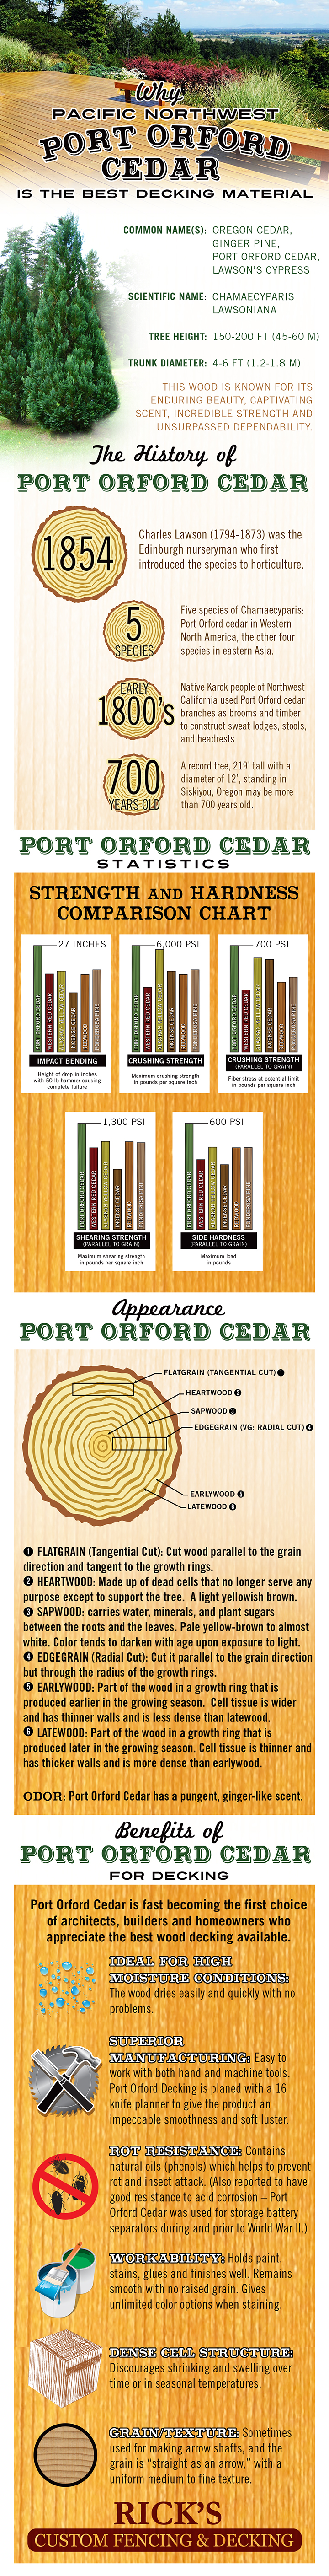 What Makes Pacific Northwest Port Orford Cedar The Best Decking Material